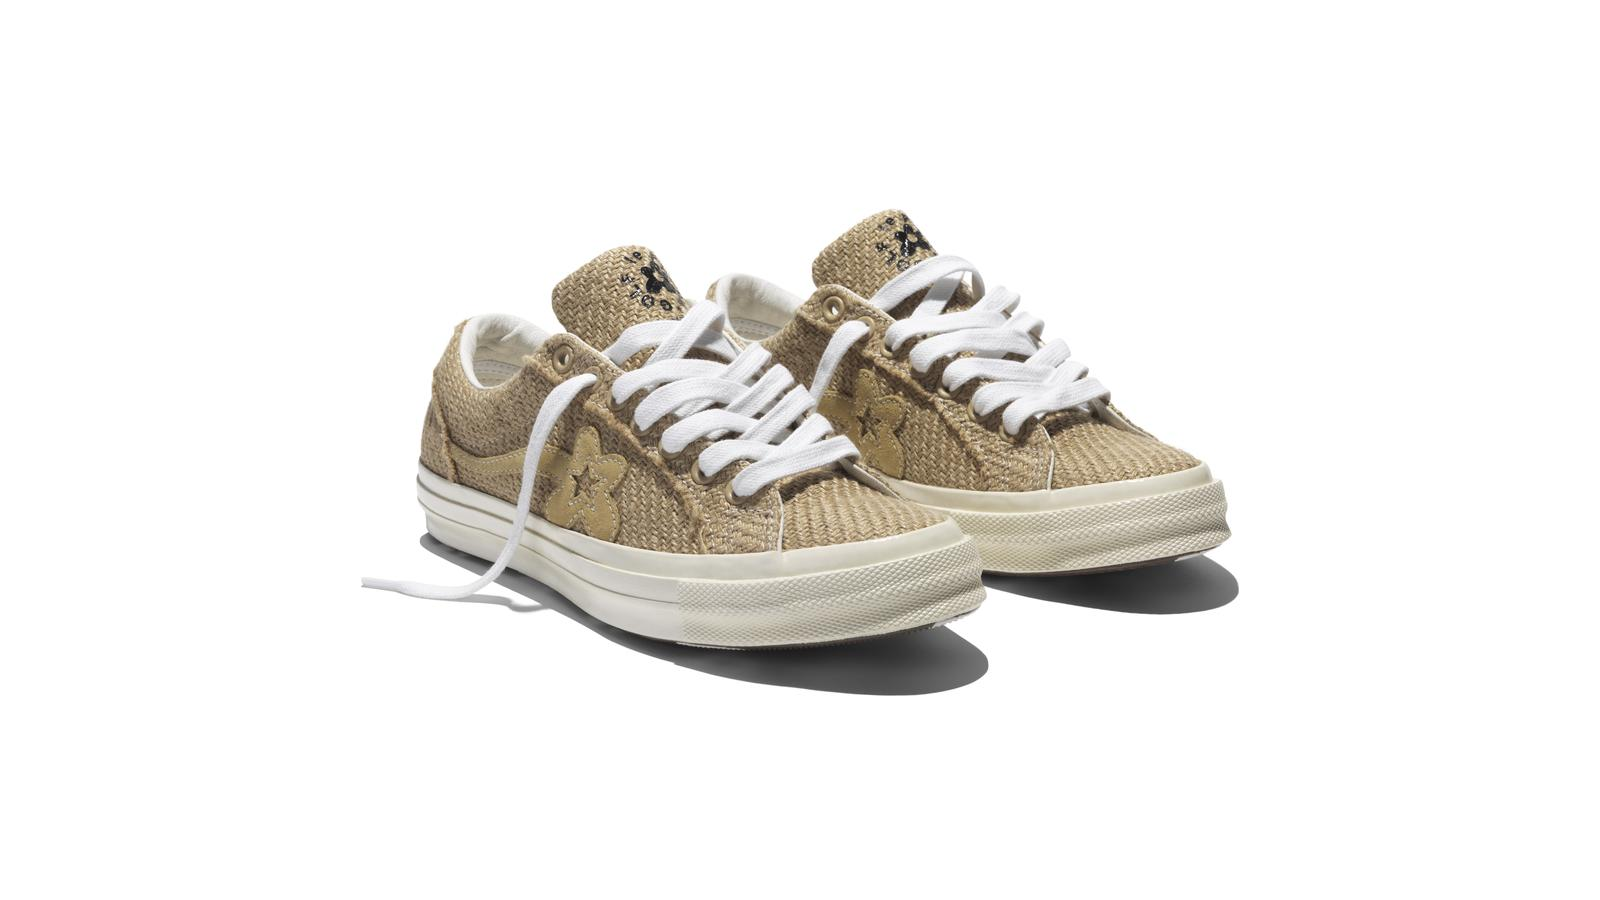 designer fashion 146a6 44505 Converse and Tyler, the Creator Introduce New Fabrics to the GOLF le FLEUR  collection